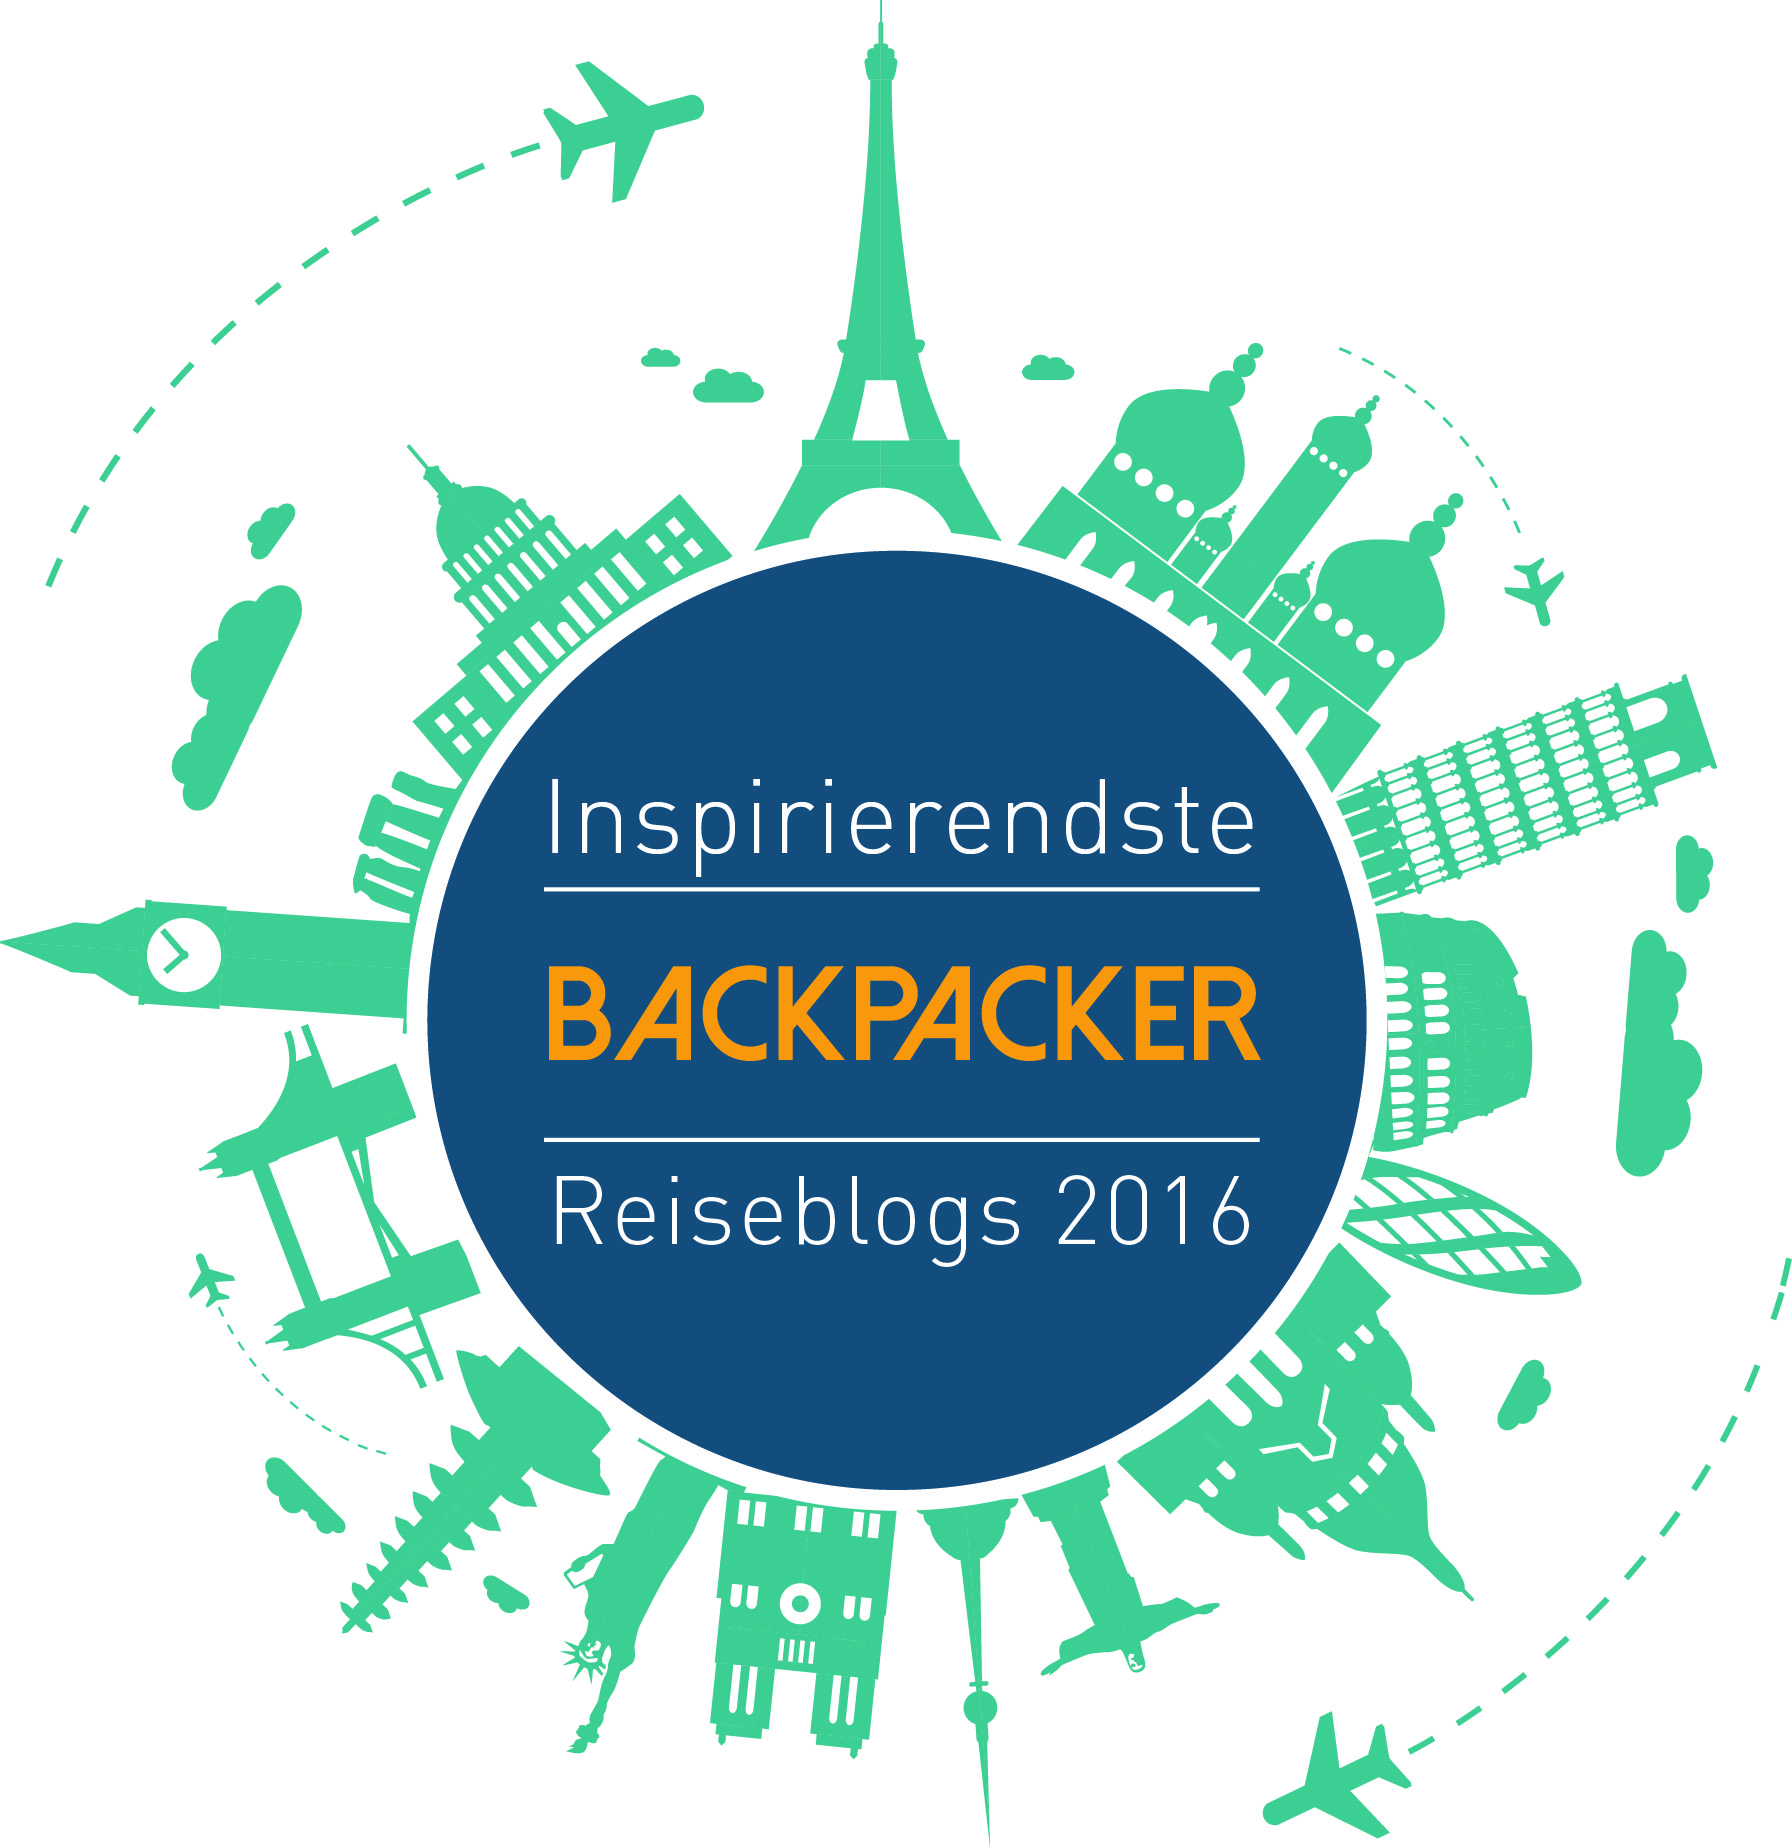 Die inspirierendsten Backpacker Reiseblogs 2016 (1)